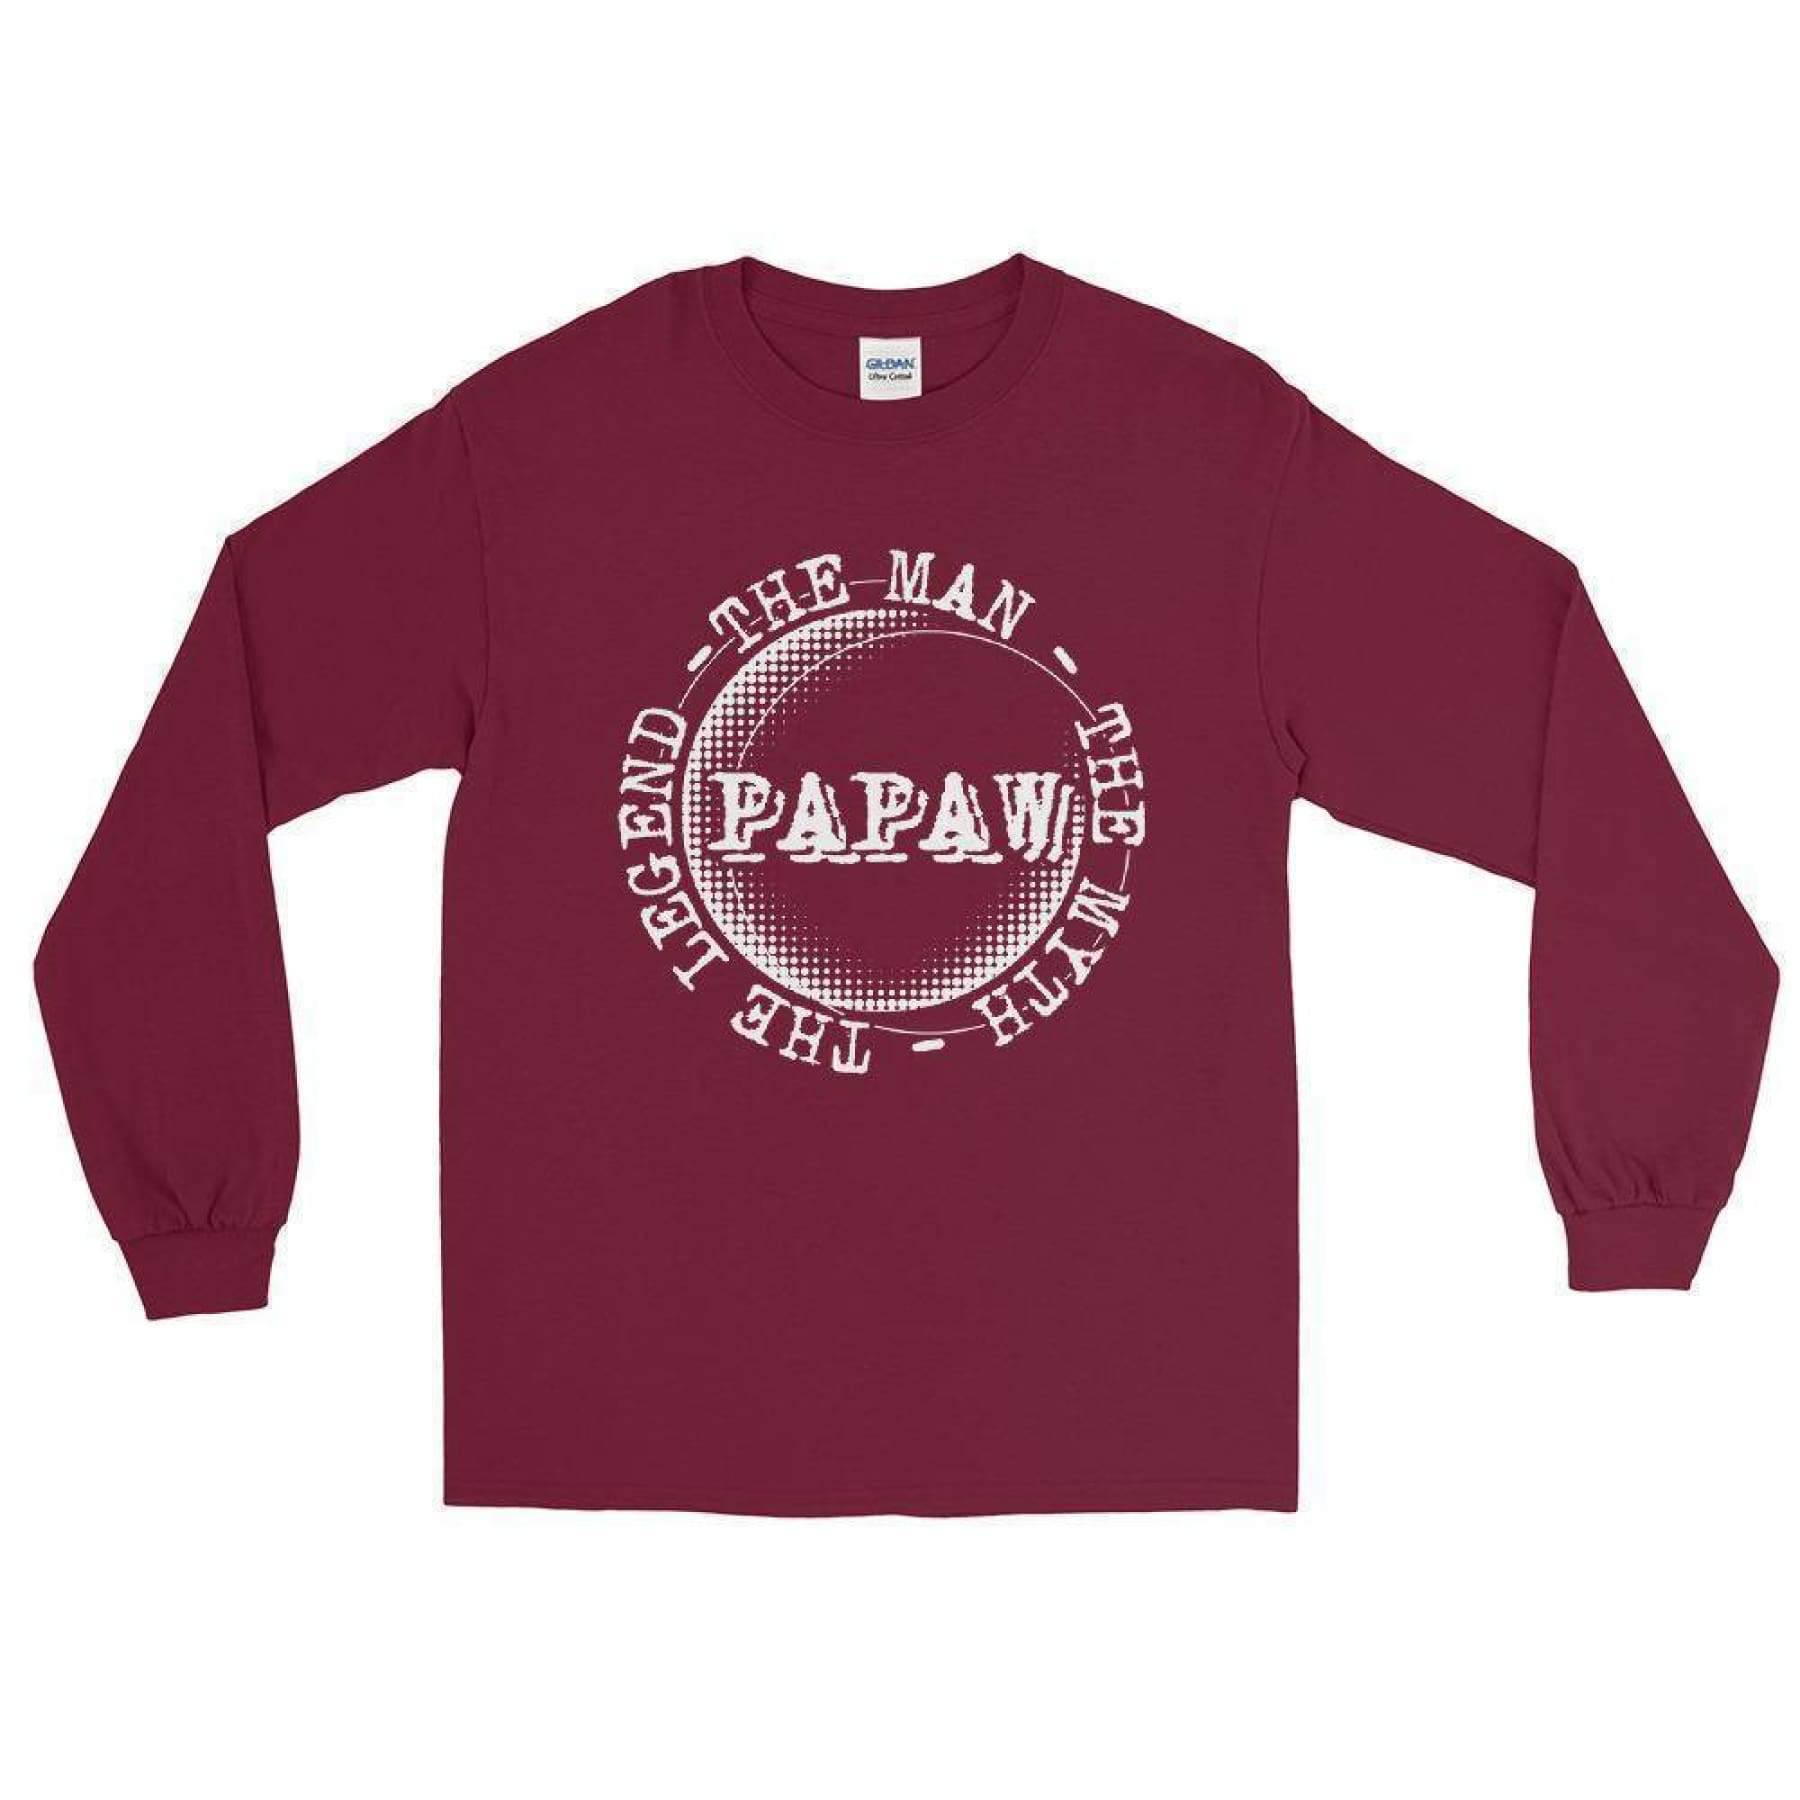 Papaw - The Man The Myth The Legend Long Sleeve T-Shirt.